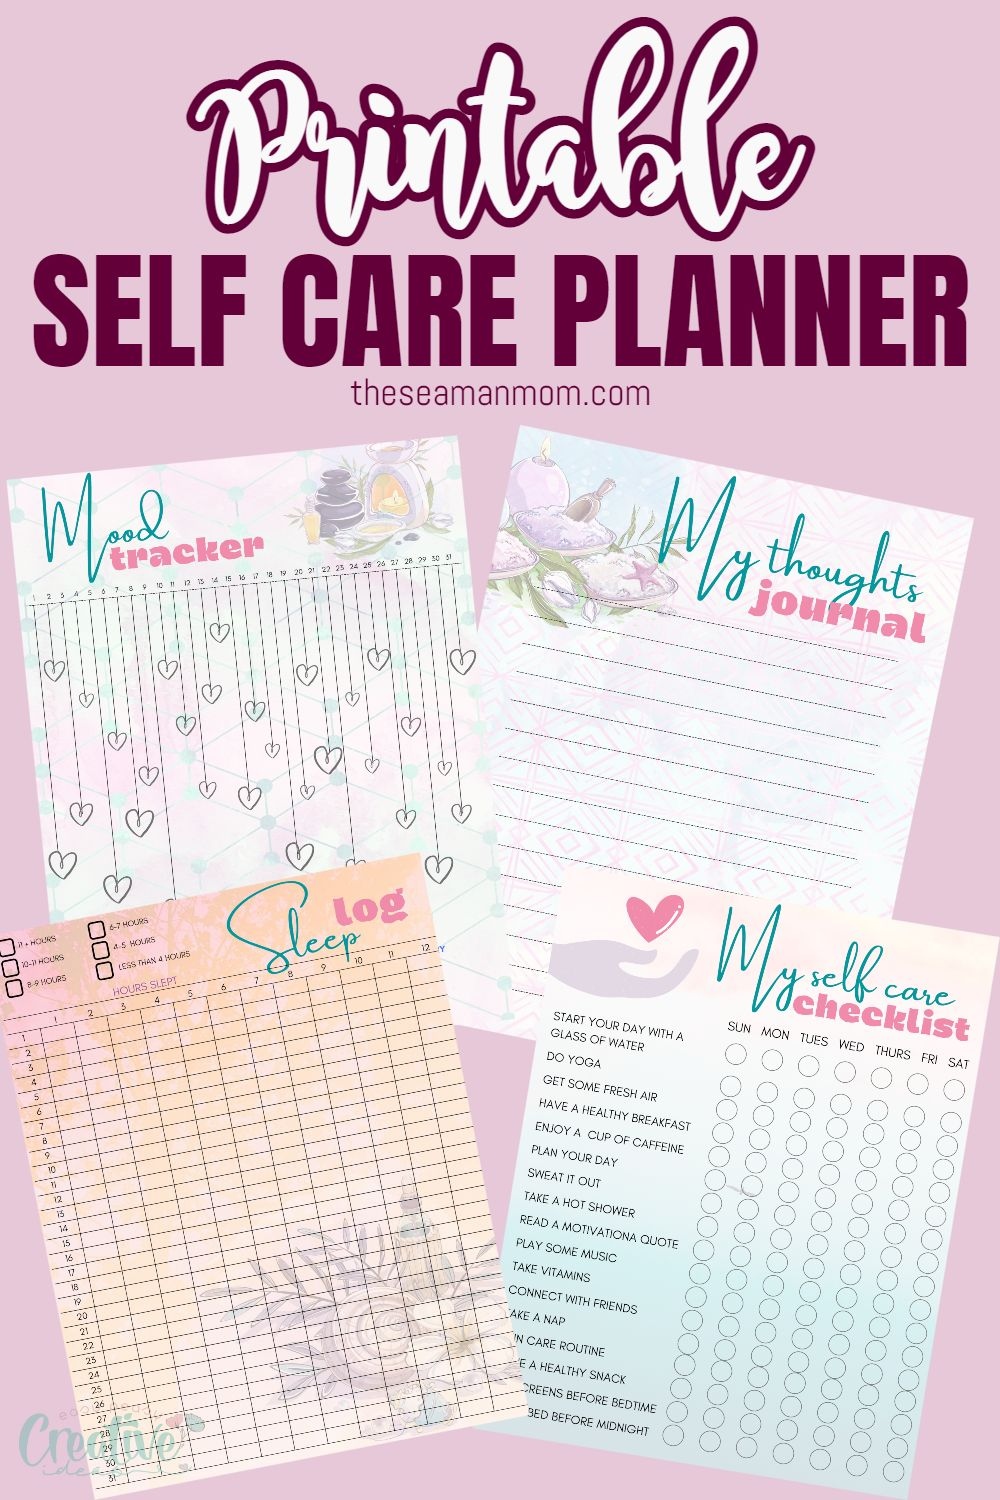 Self care plan